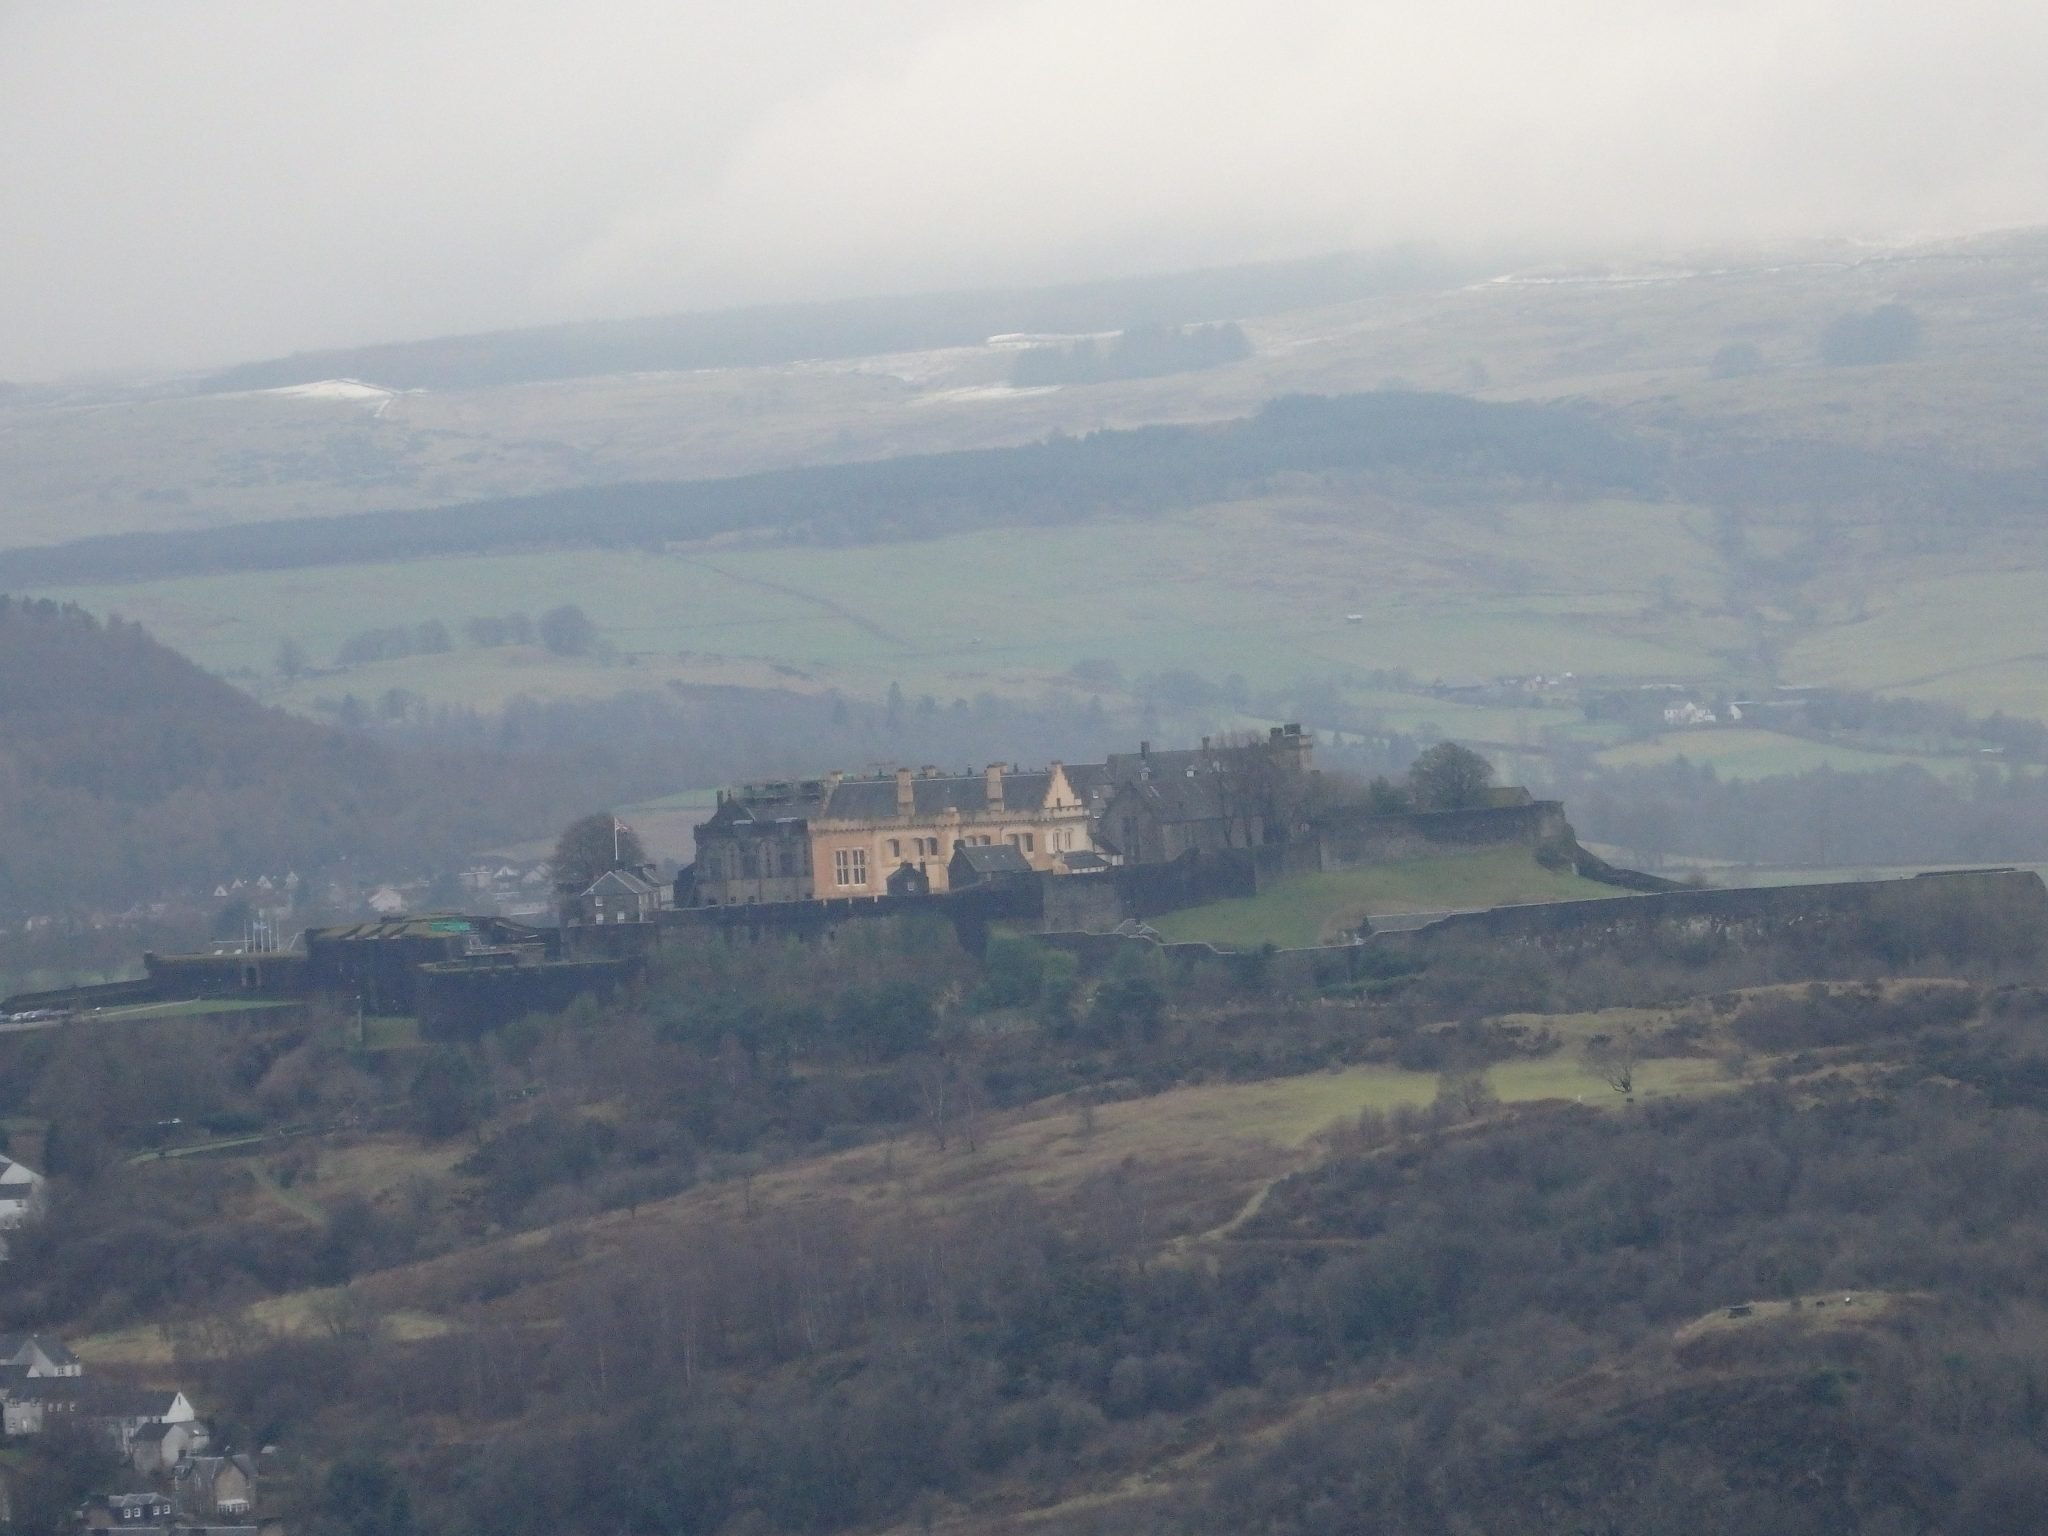 Stirling Castle, as seen by zooming my little compact camera as far as it would go.